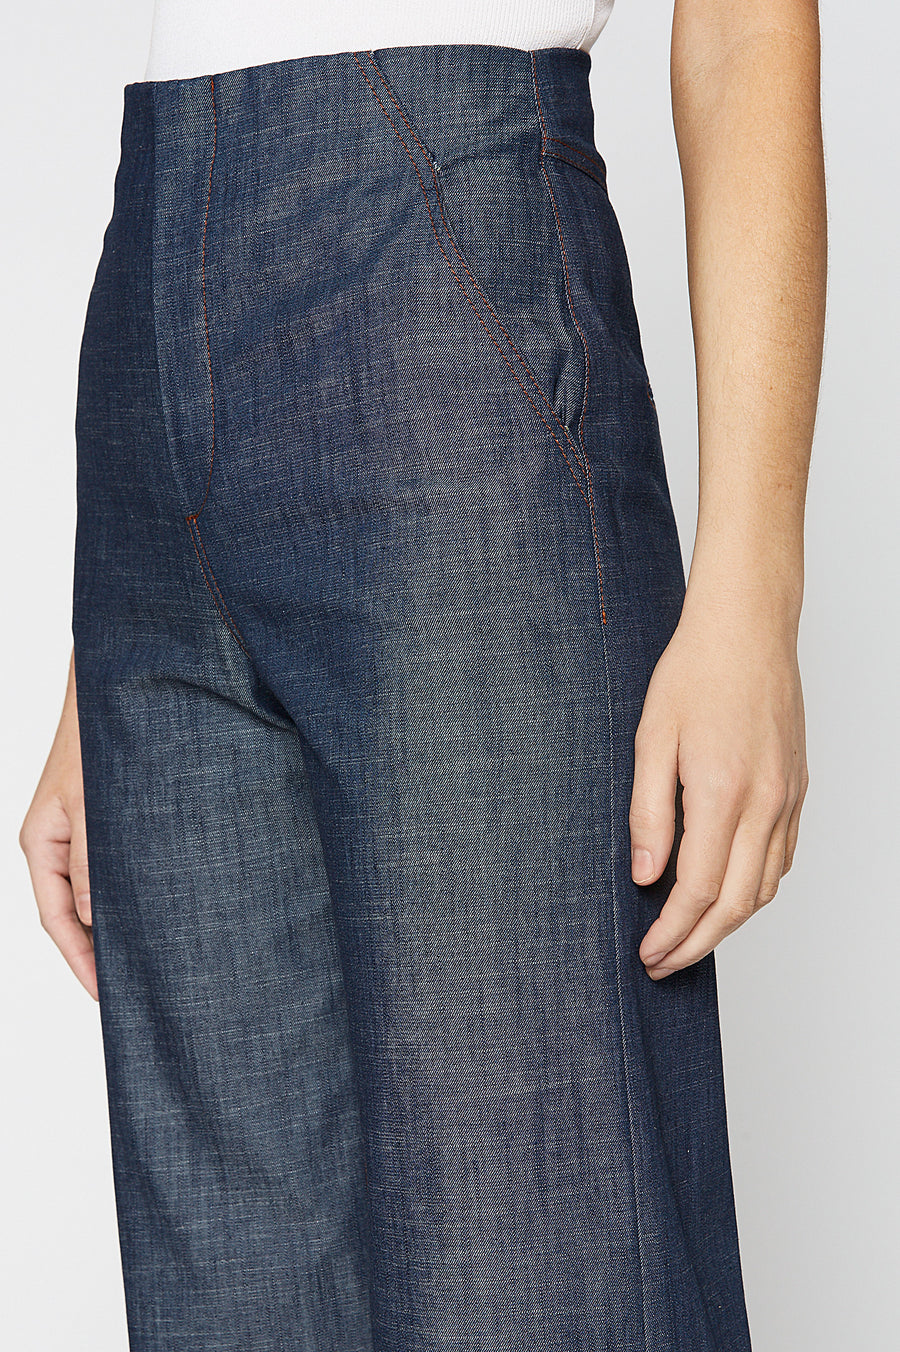 8 Ounce Denim Cropped Jean, flared silhouette, Designed to sit high on the waist, fall just above the ankle, Color Indigo Blue